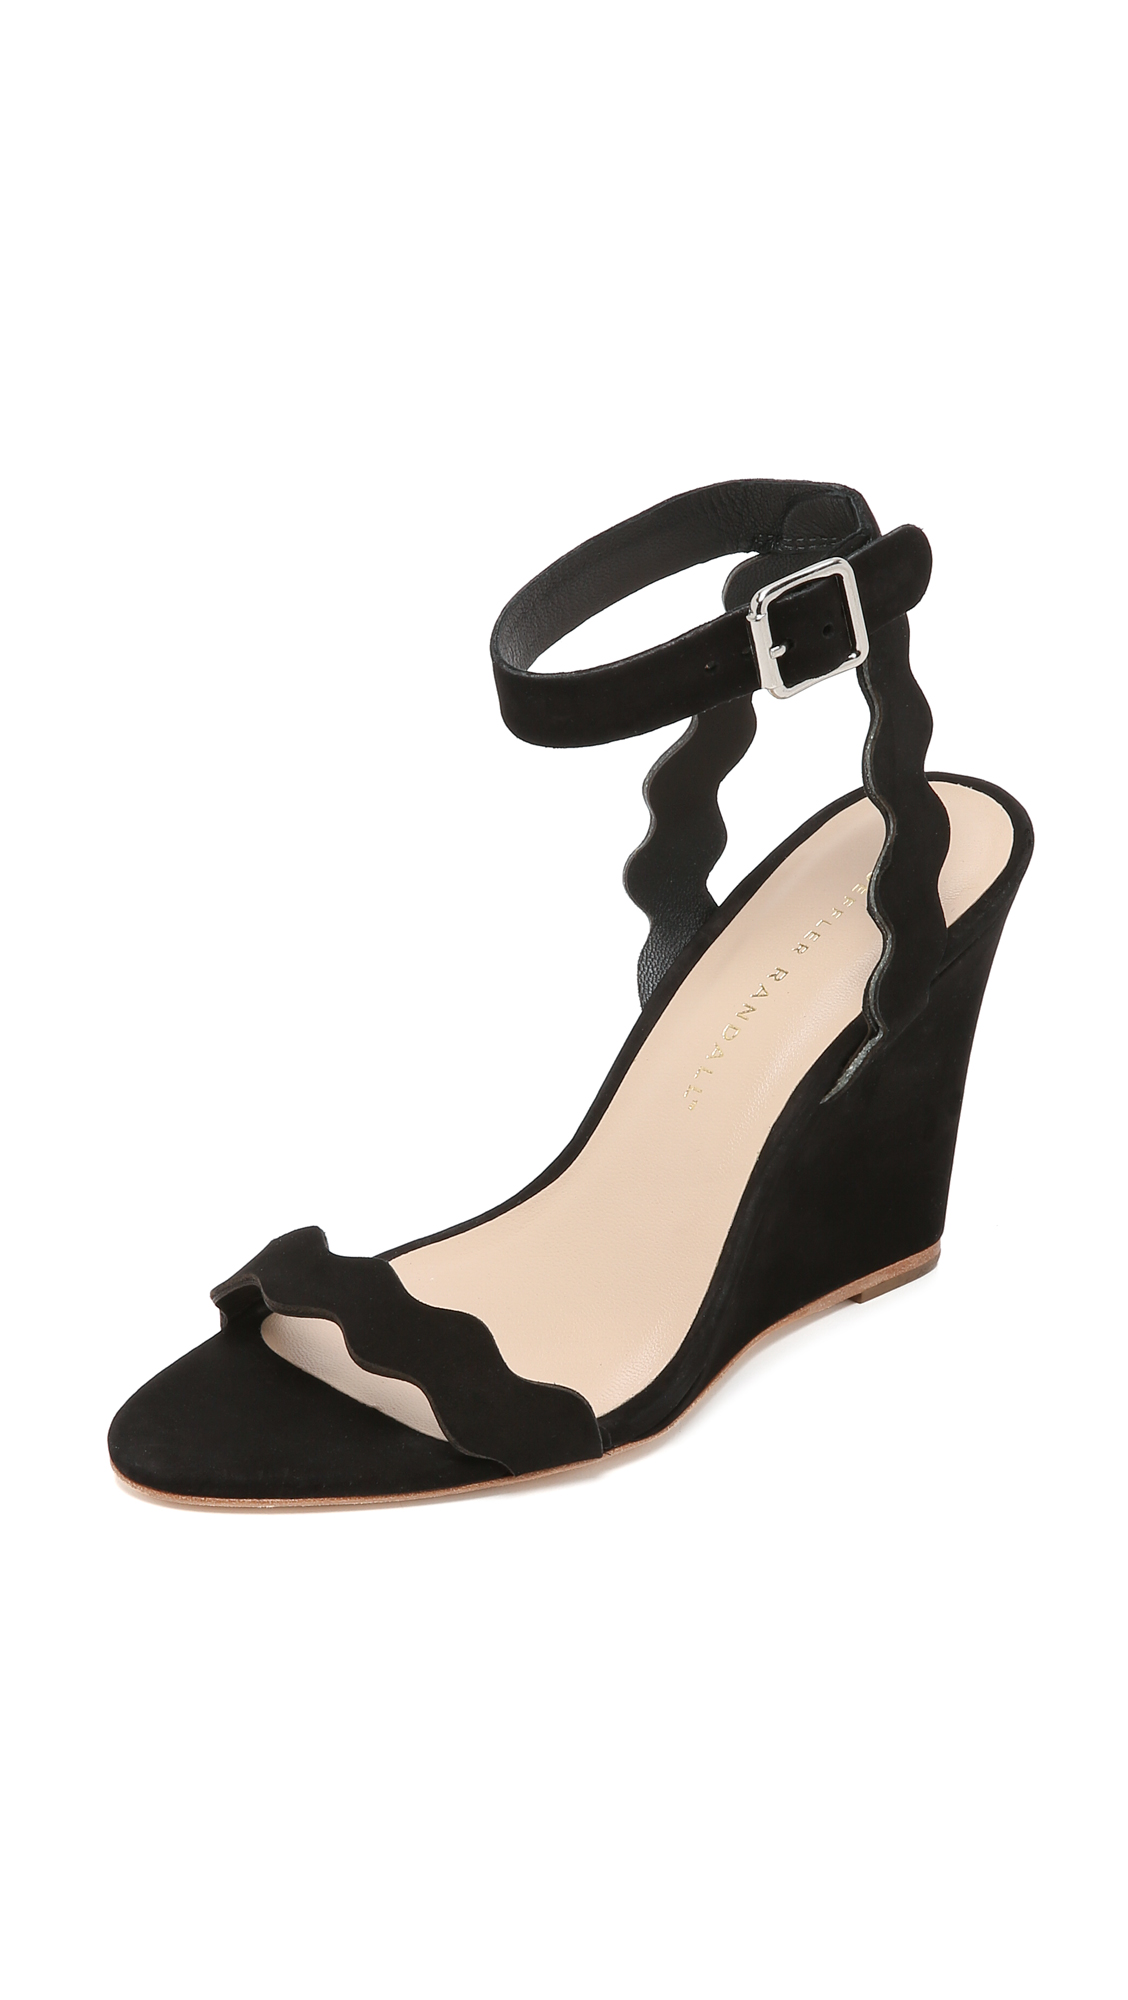 Loeffler Randall Piper Wedge Sandals - Black